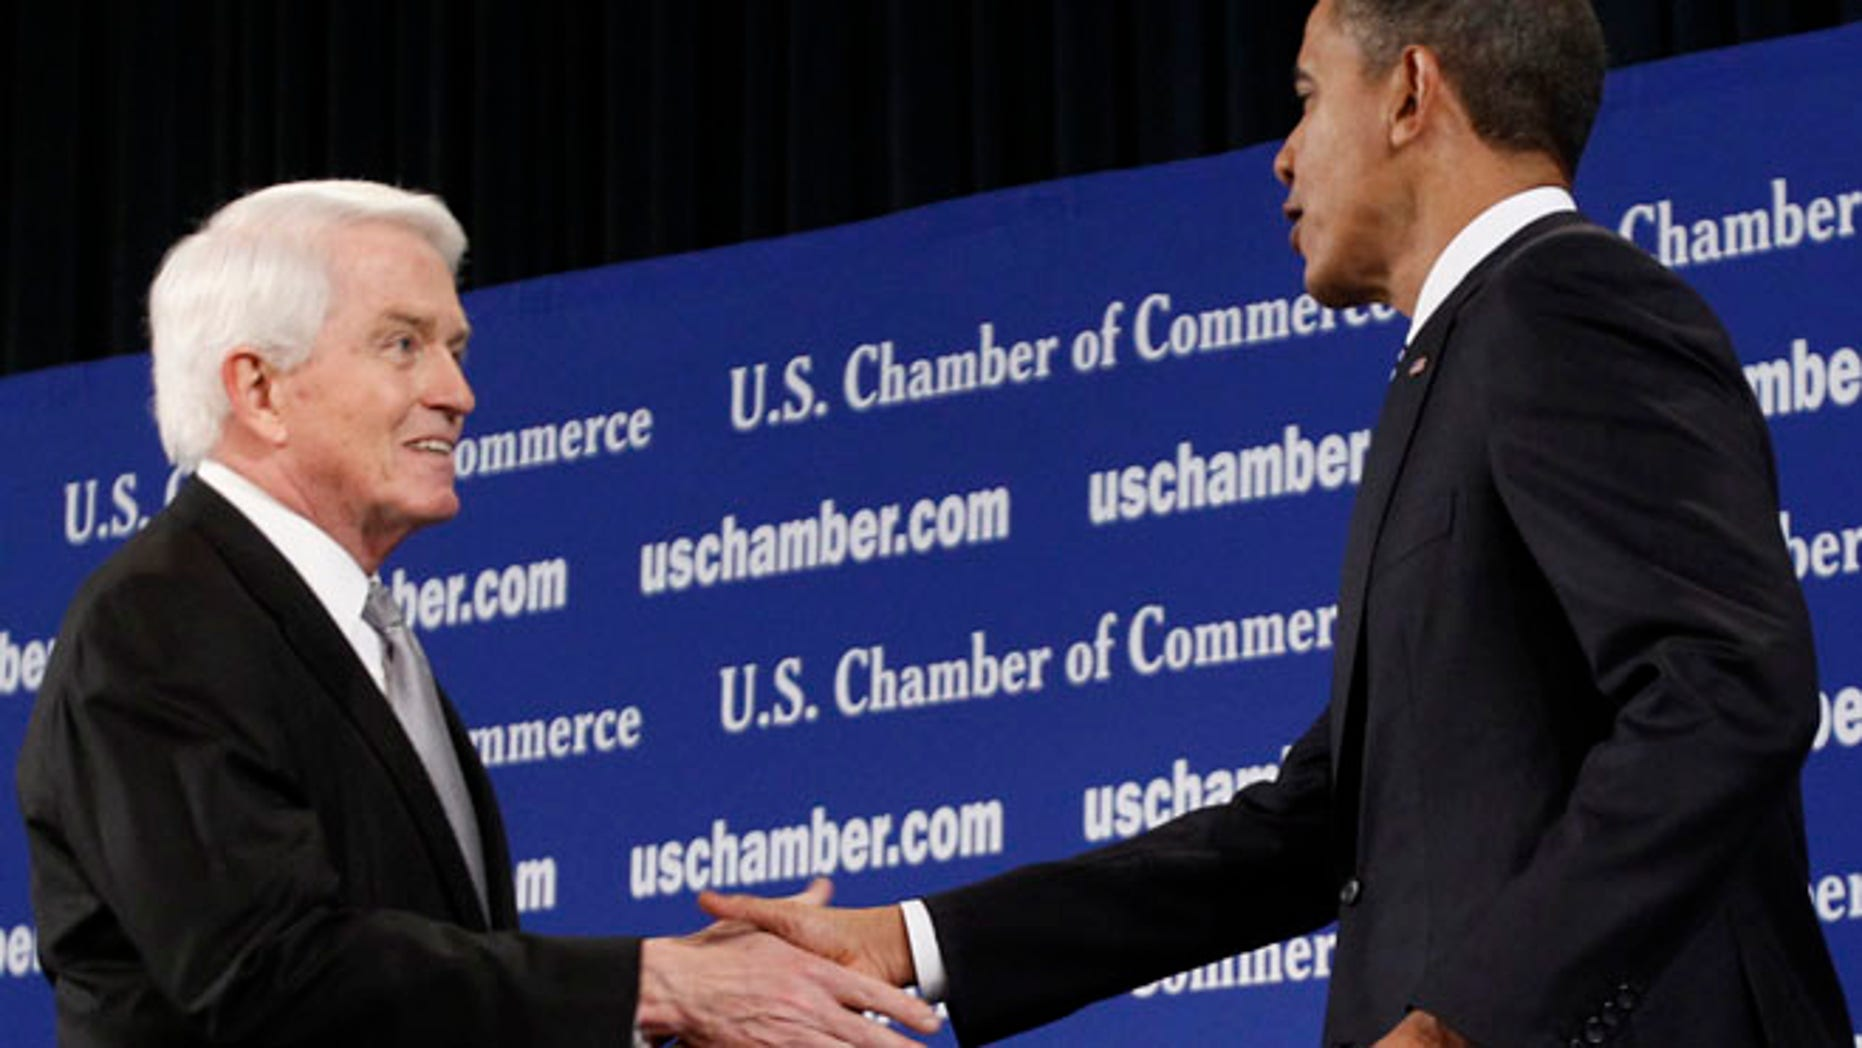 Feb 7. 2011: President Obama is greeted by Chamber of Commerce President Tom Donohue as he arrives to address the crowd in Washington. (Reuters)